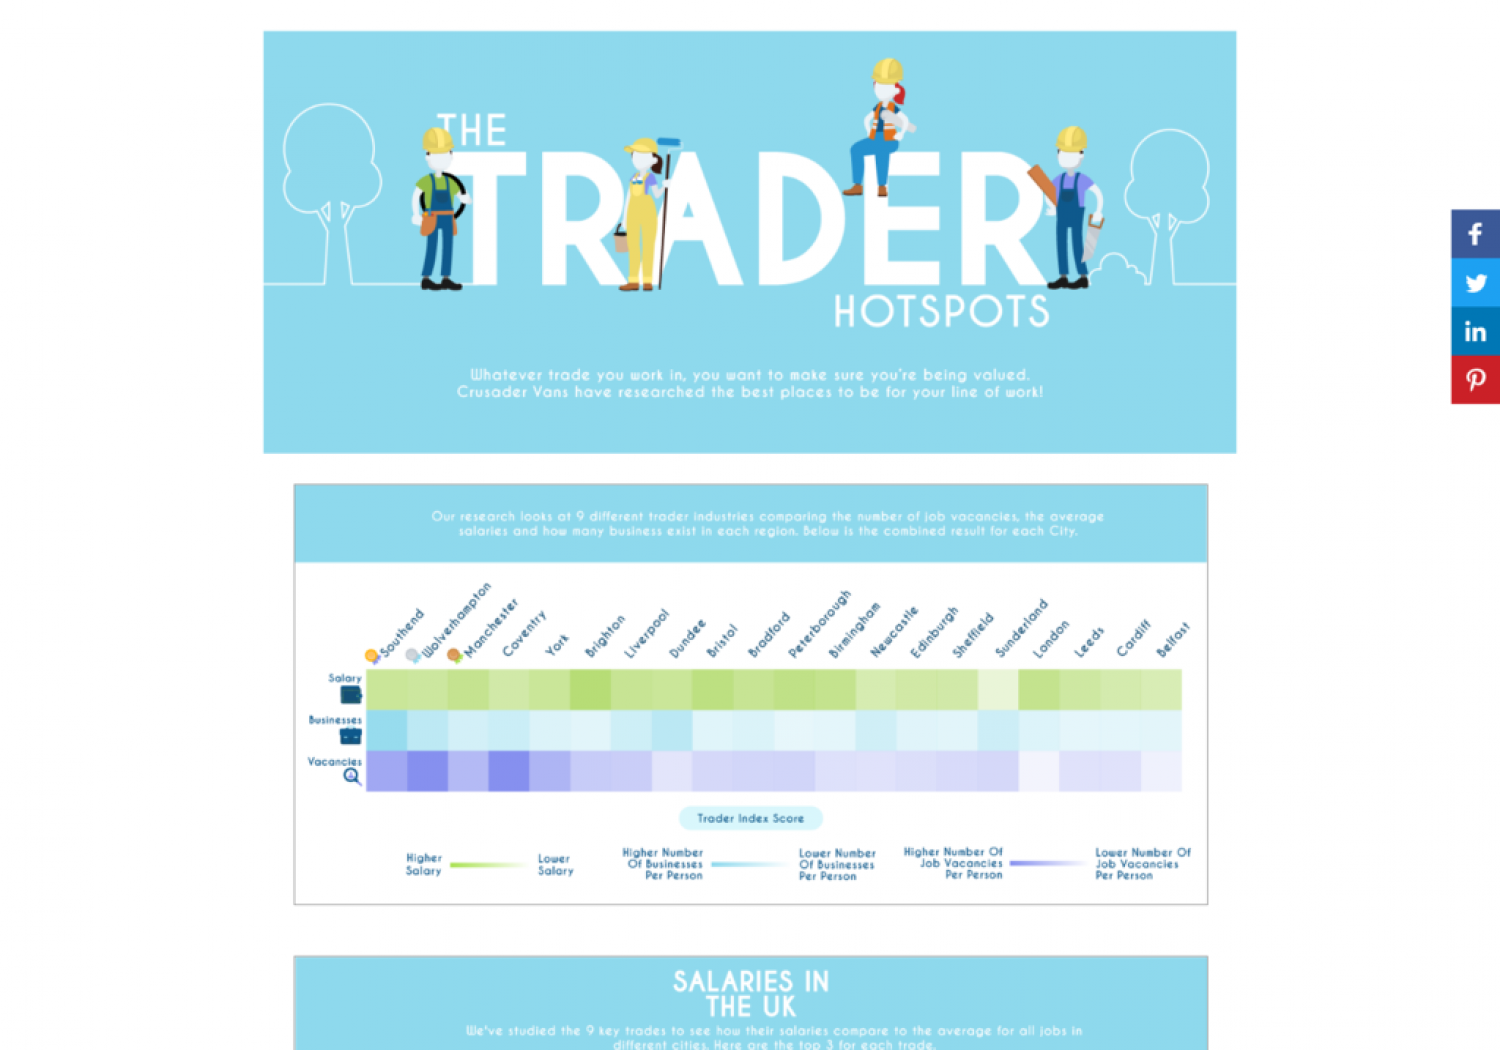 The Trader Hotspots Infographic